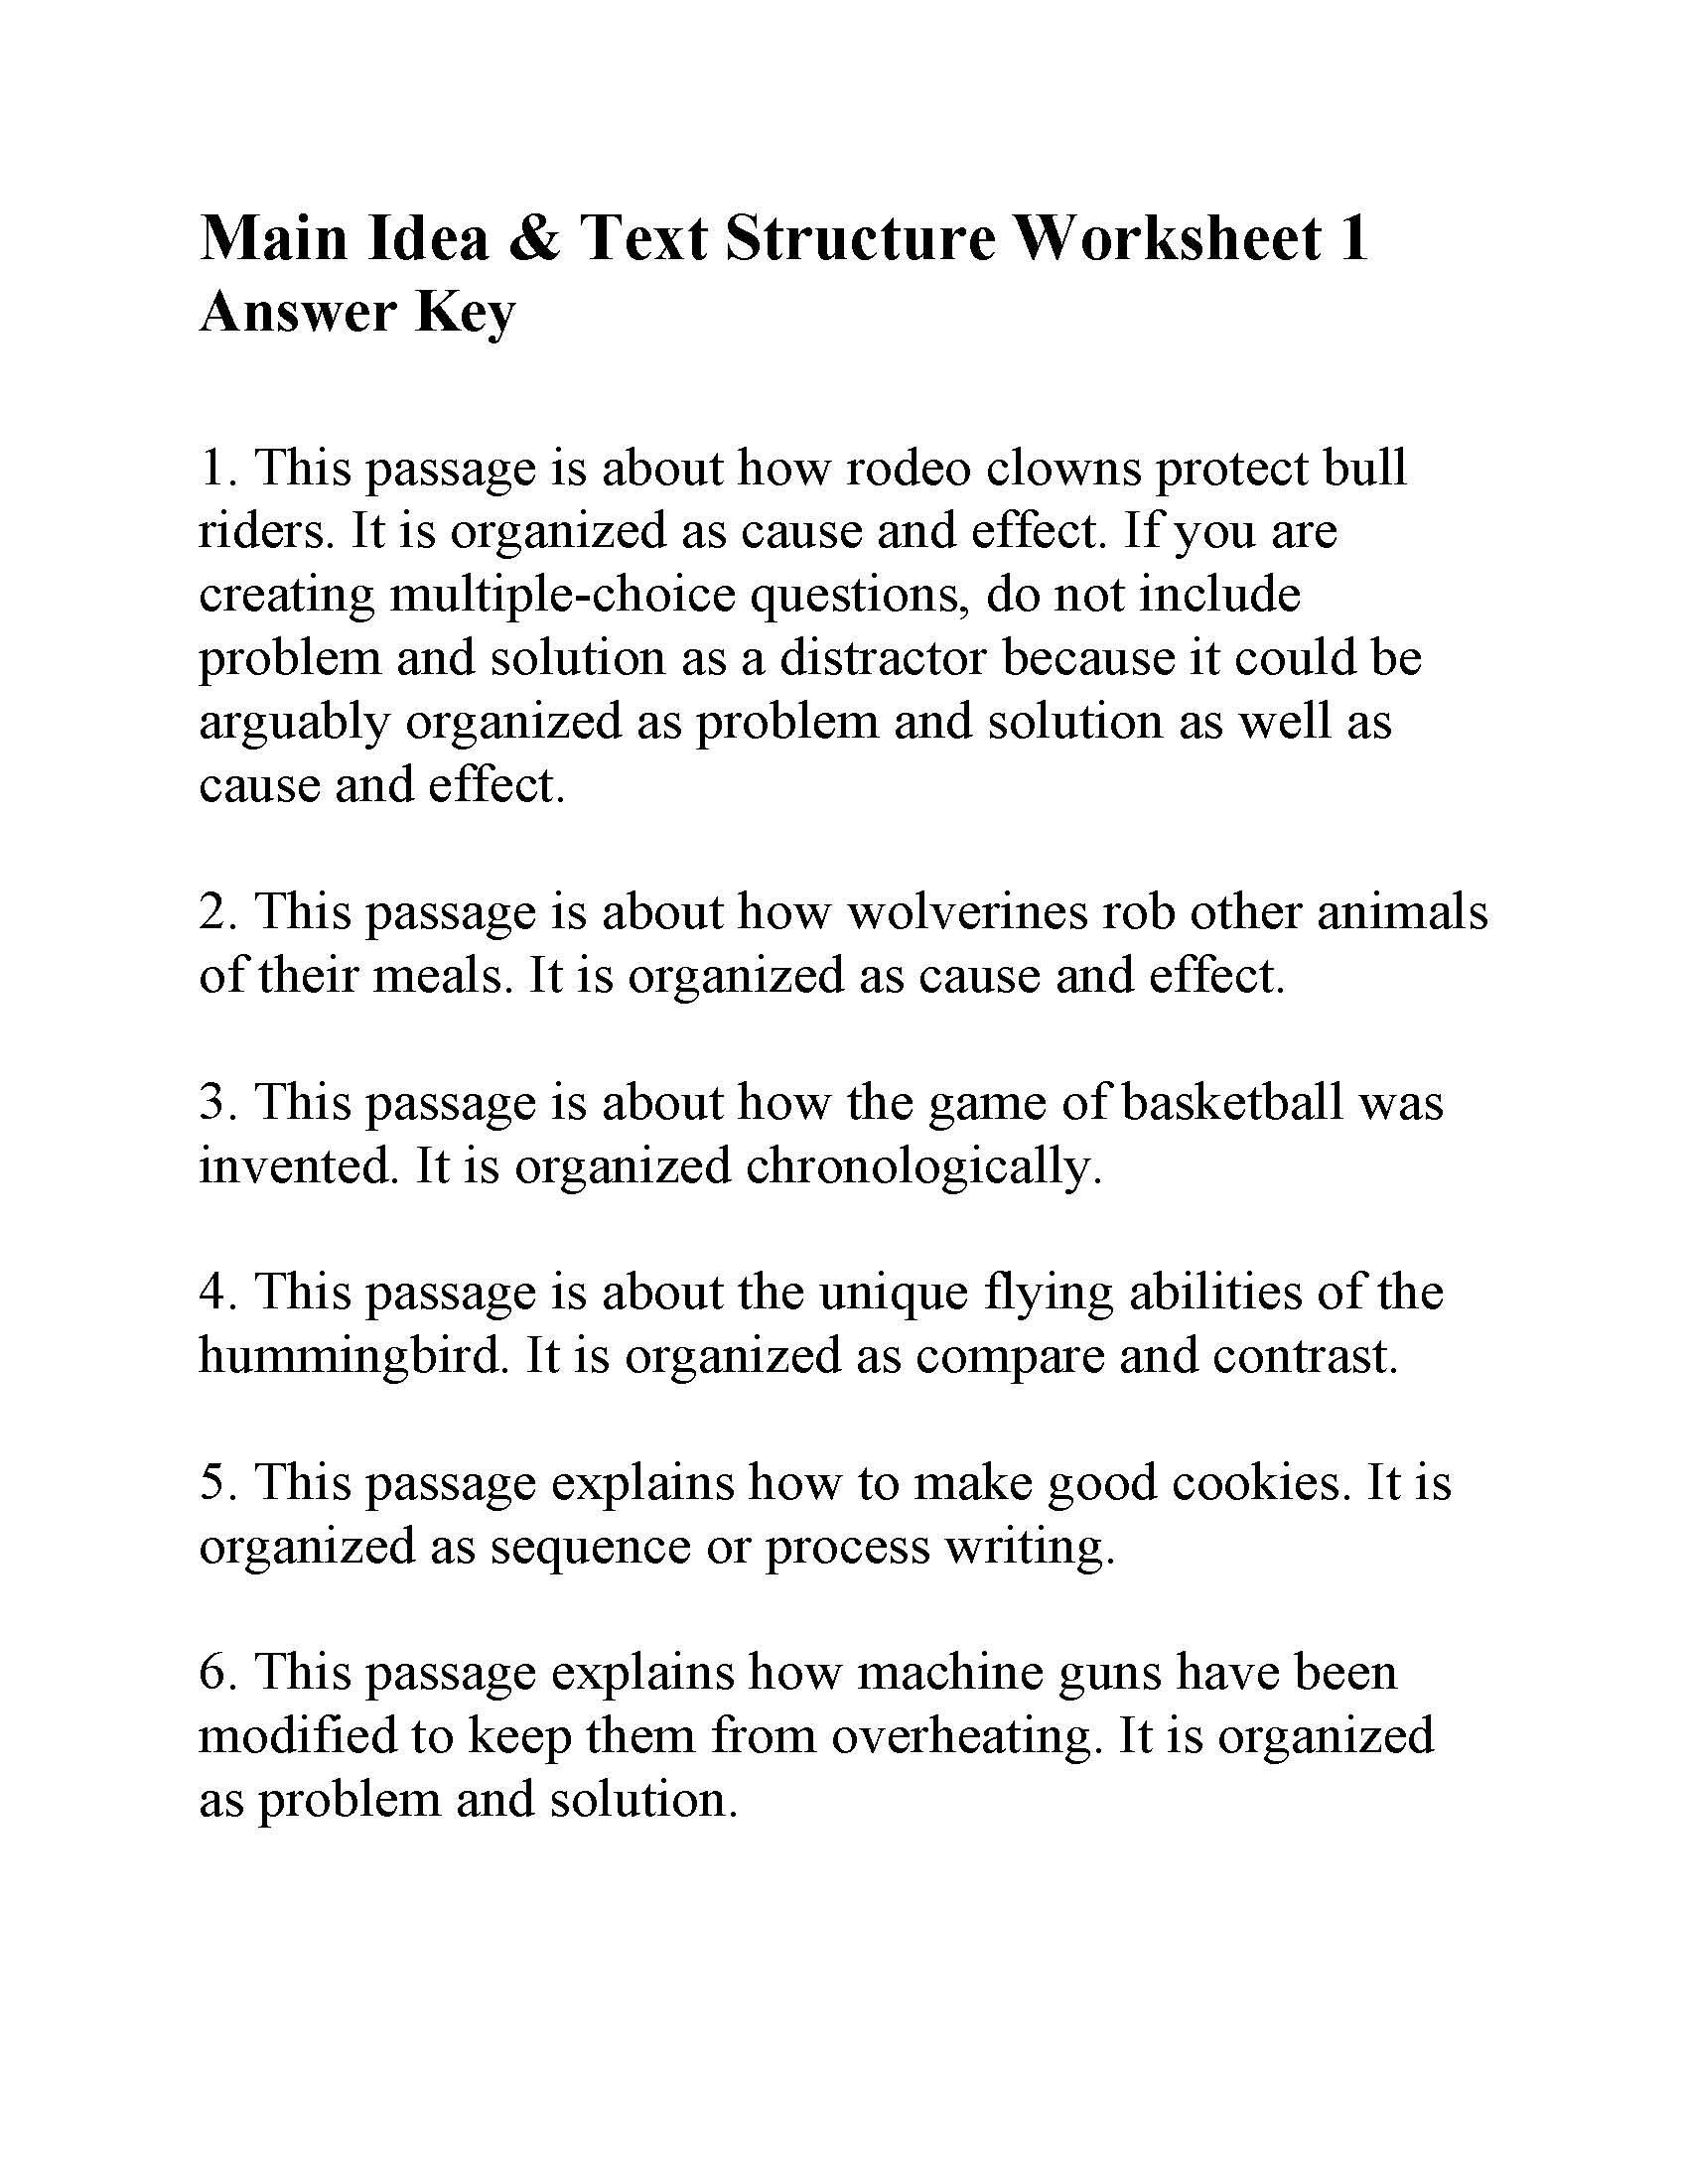 Main Idea Worksheets Middle School This is the Answer Key for the Main Idea and Text Structure